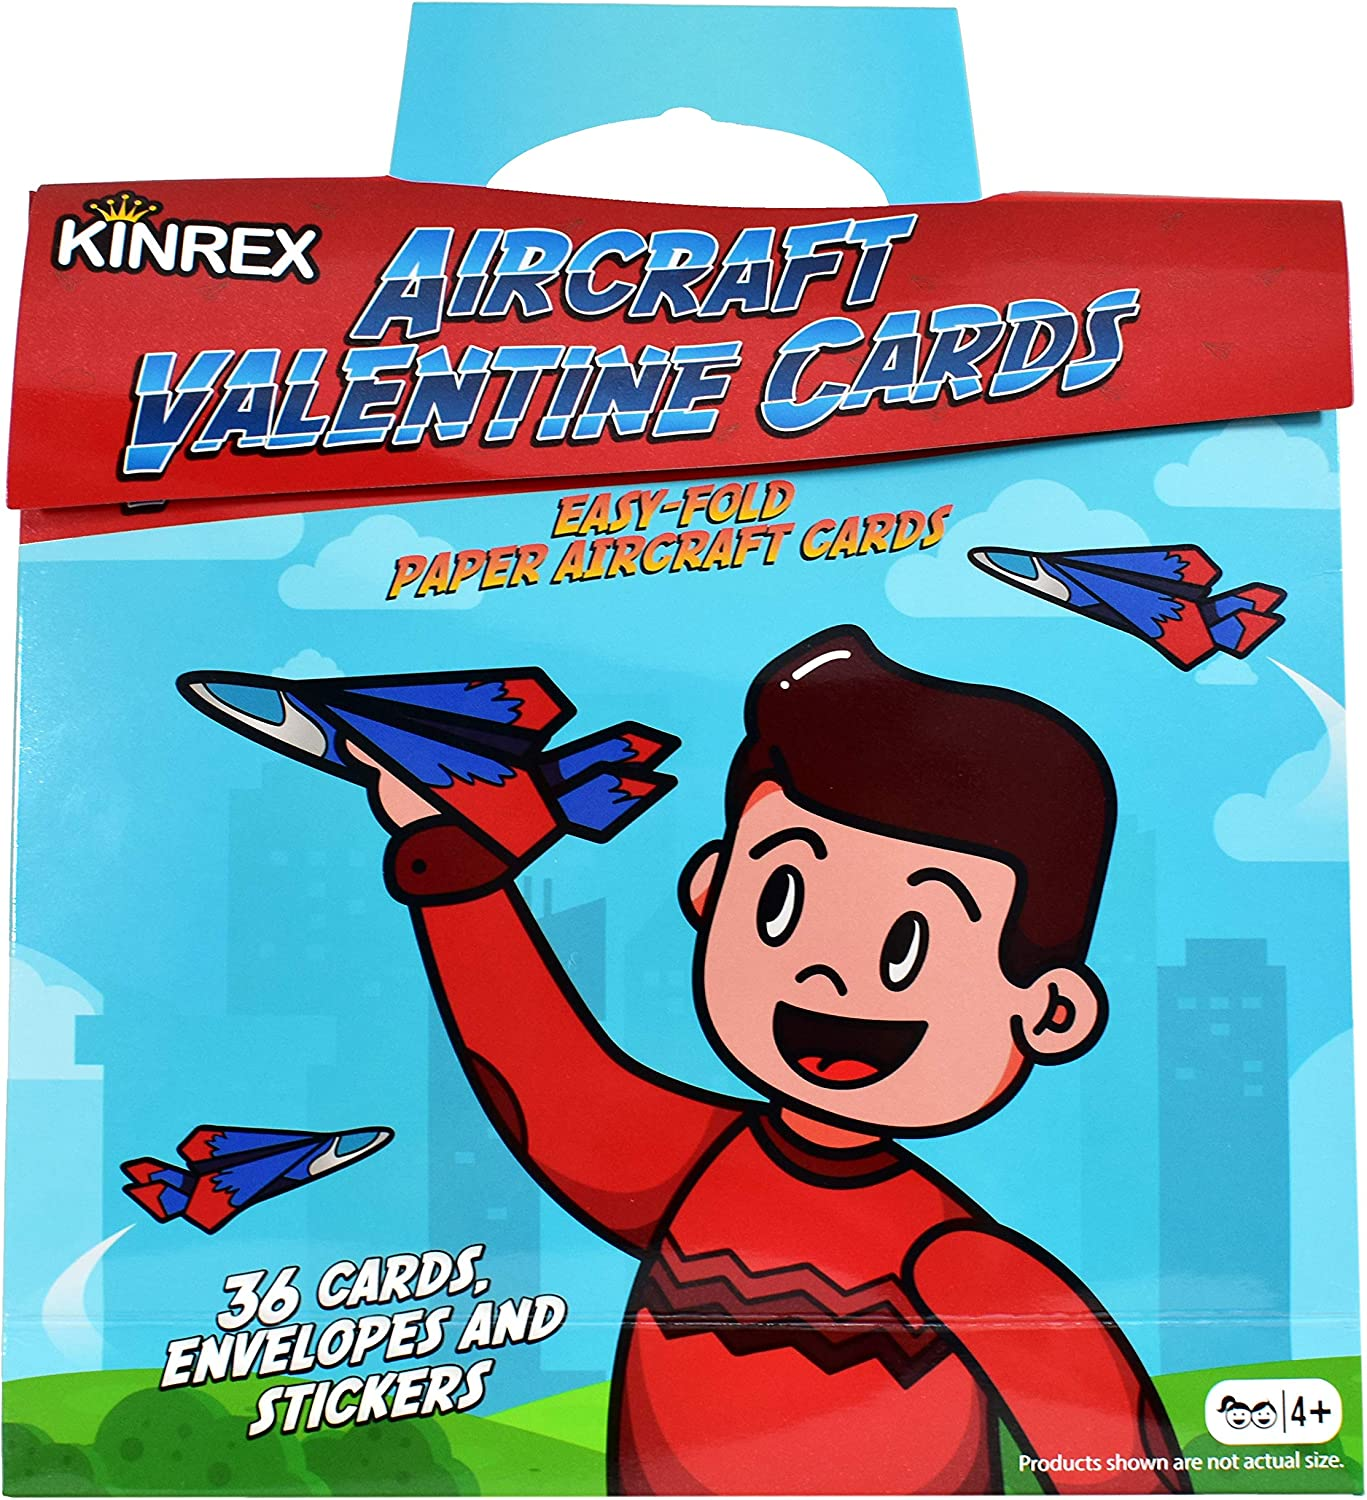 KINREX Valentines Gifts Cards for Kids  Valentine's Day Flying Paper Airplanes  Happy Valentine's Day Gifts for Kids  Valentines DIY Craft Card Kit  Valentine's School Party Favors  36 Count